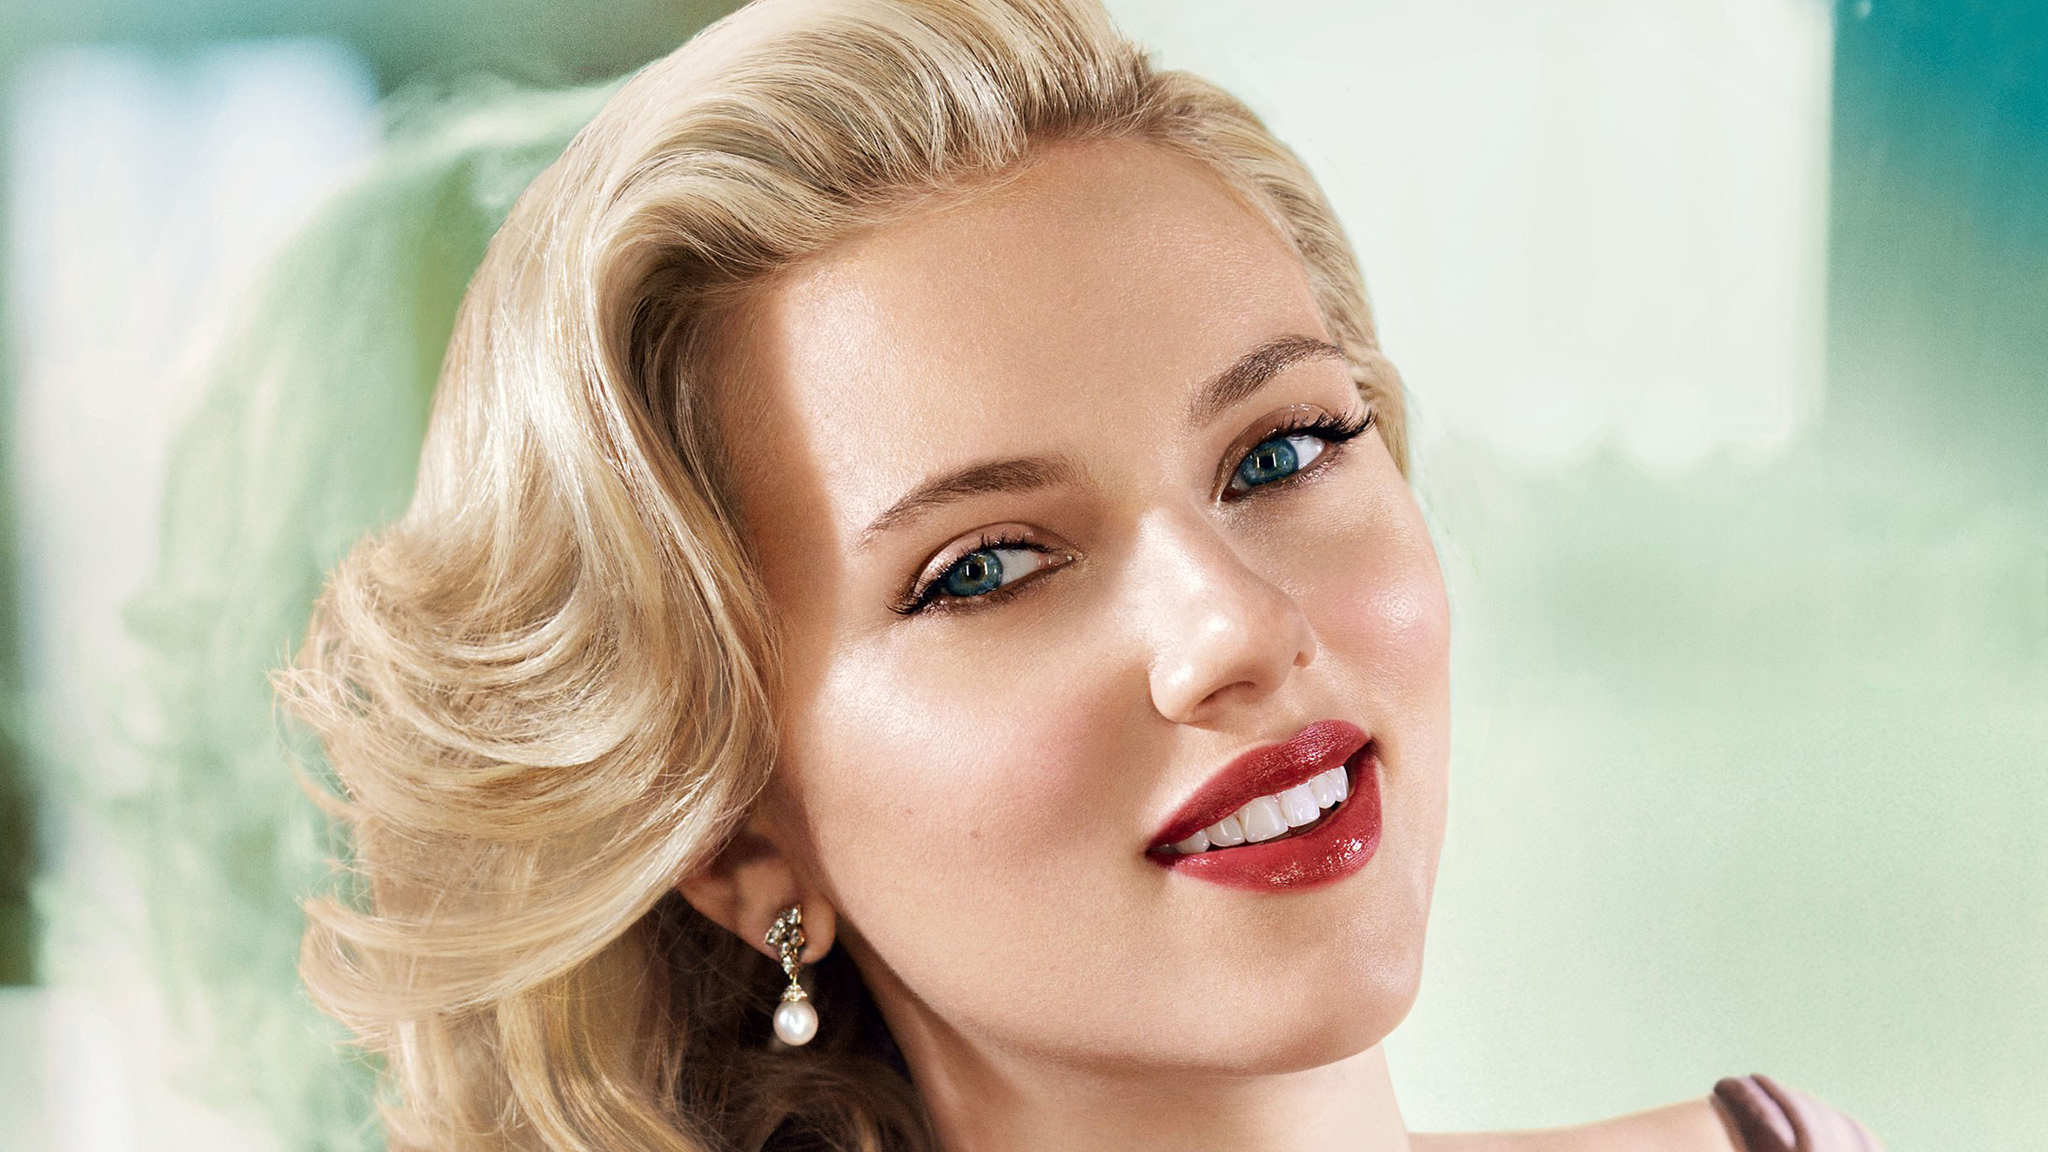 Scarlett Johansson Makeup HD Wallpaper 65778 2048x1152px